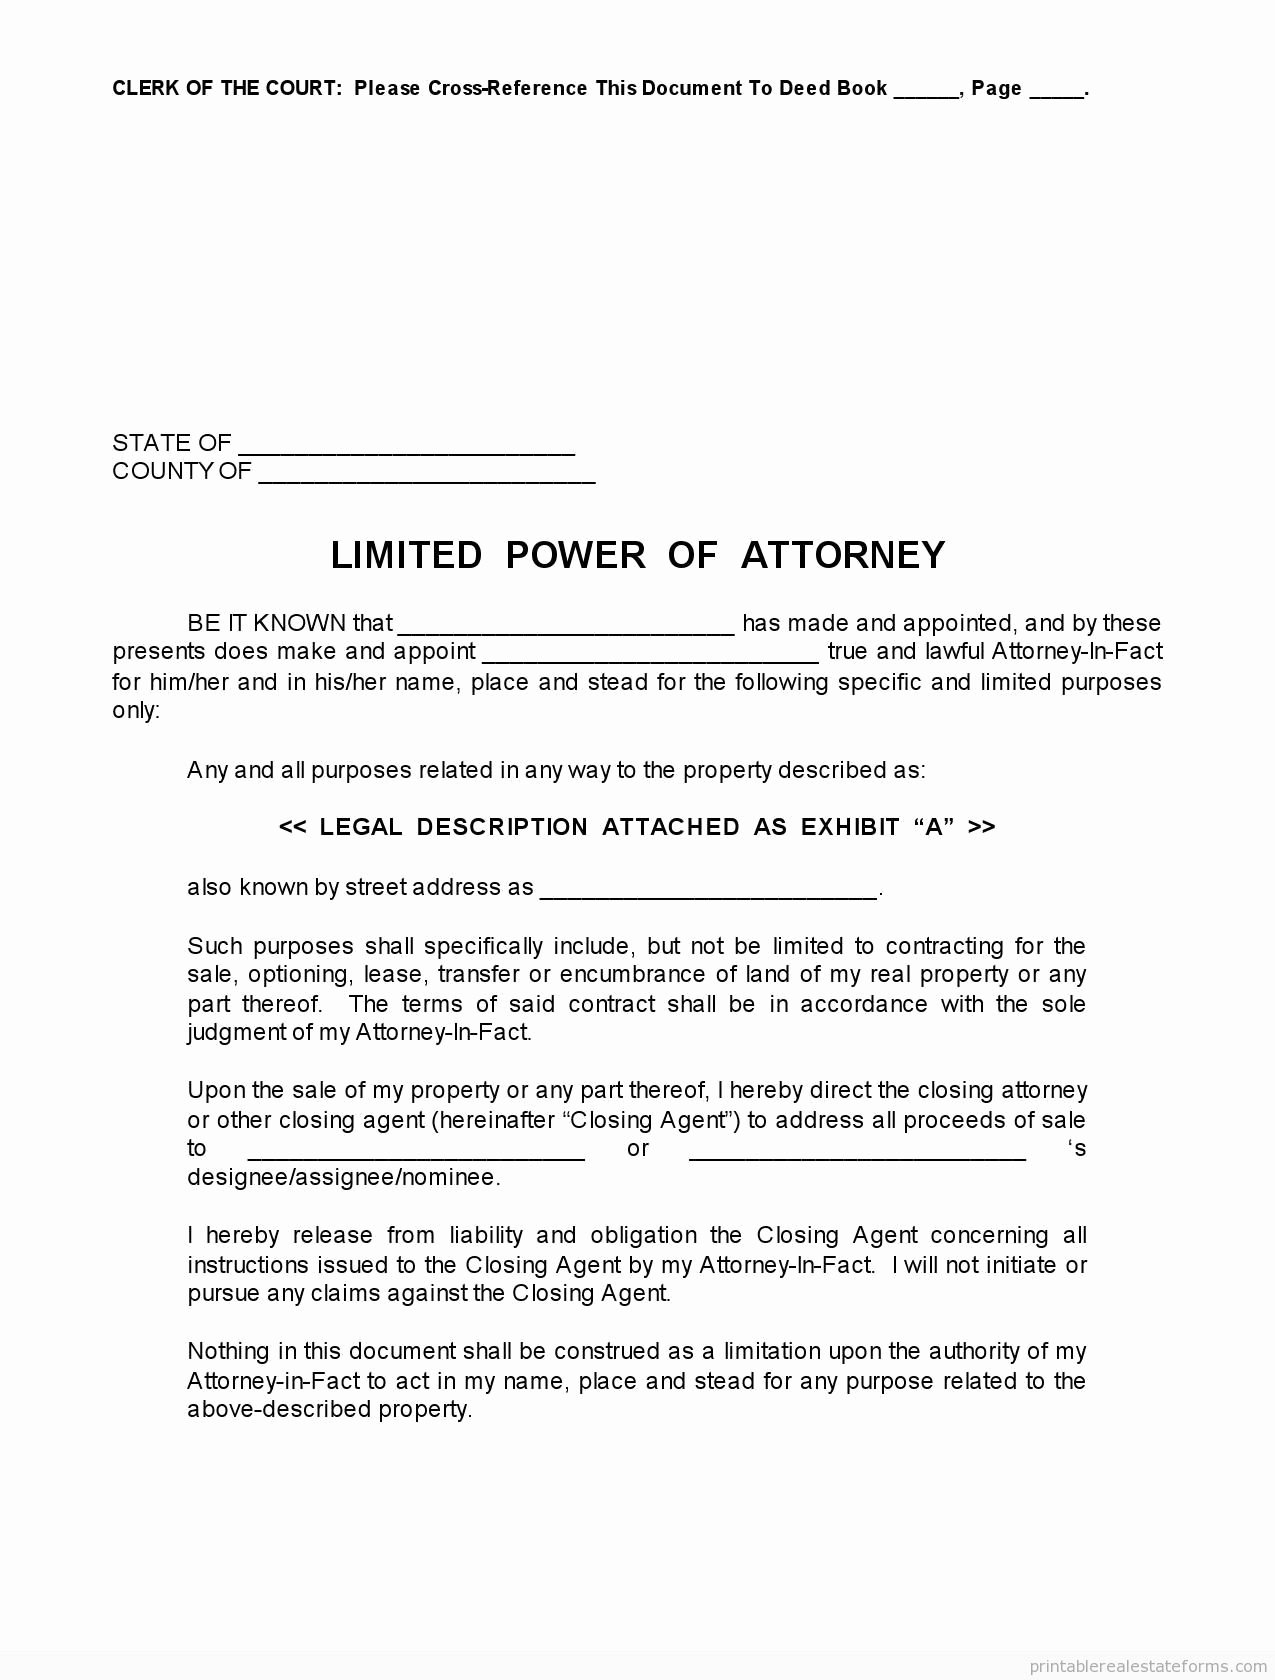 Special Power Of attorney Sample Awesome Sample Printable Limited Power Of attorney form Printable Real Estate forms 2014